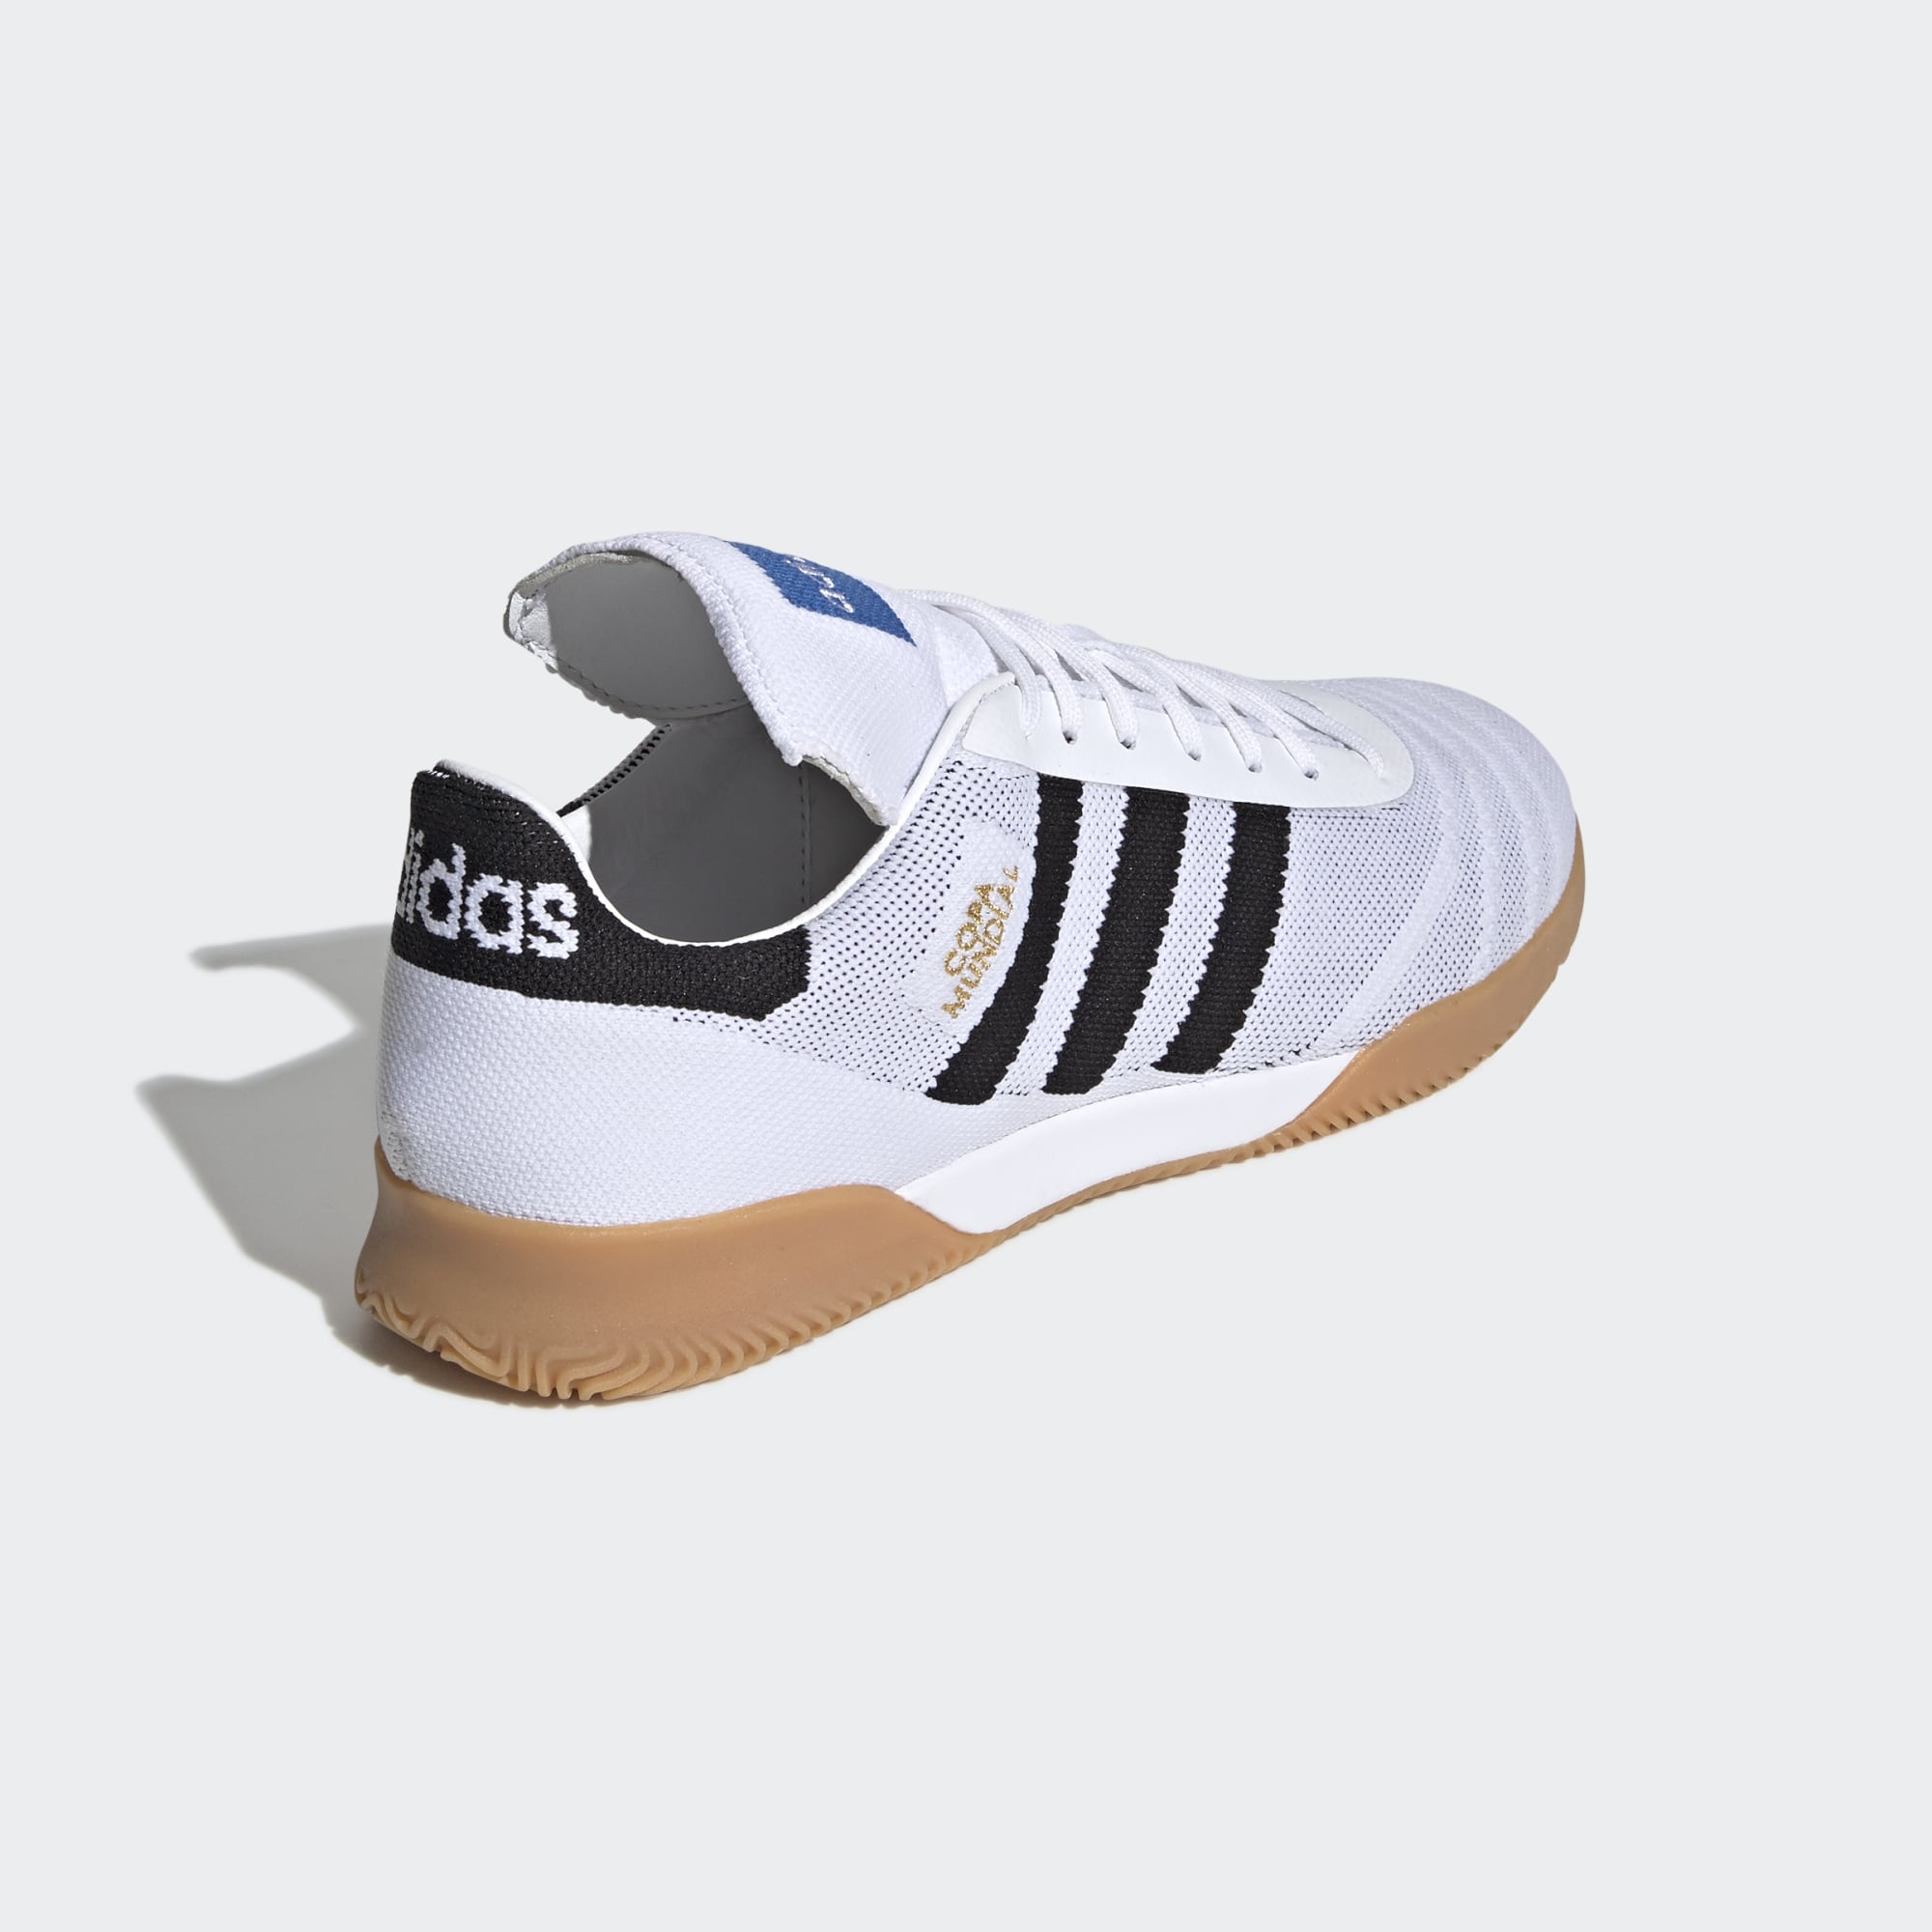 a43bd09a4 ... Click to enlarge image  adidas_copa_mundial_70_years_trainers_ftwr_white_core_black_red_2.jpg ...